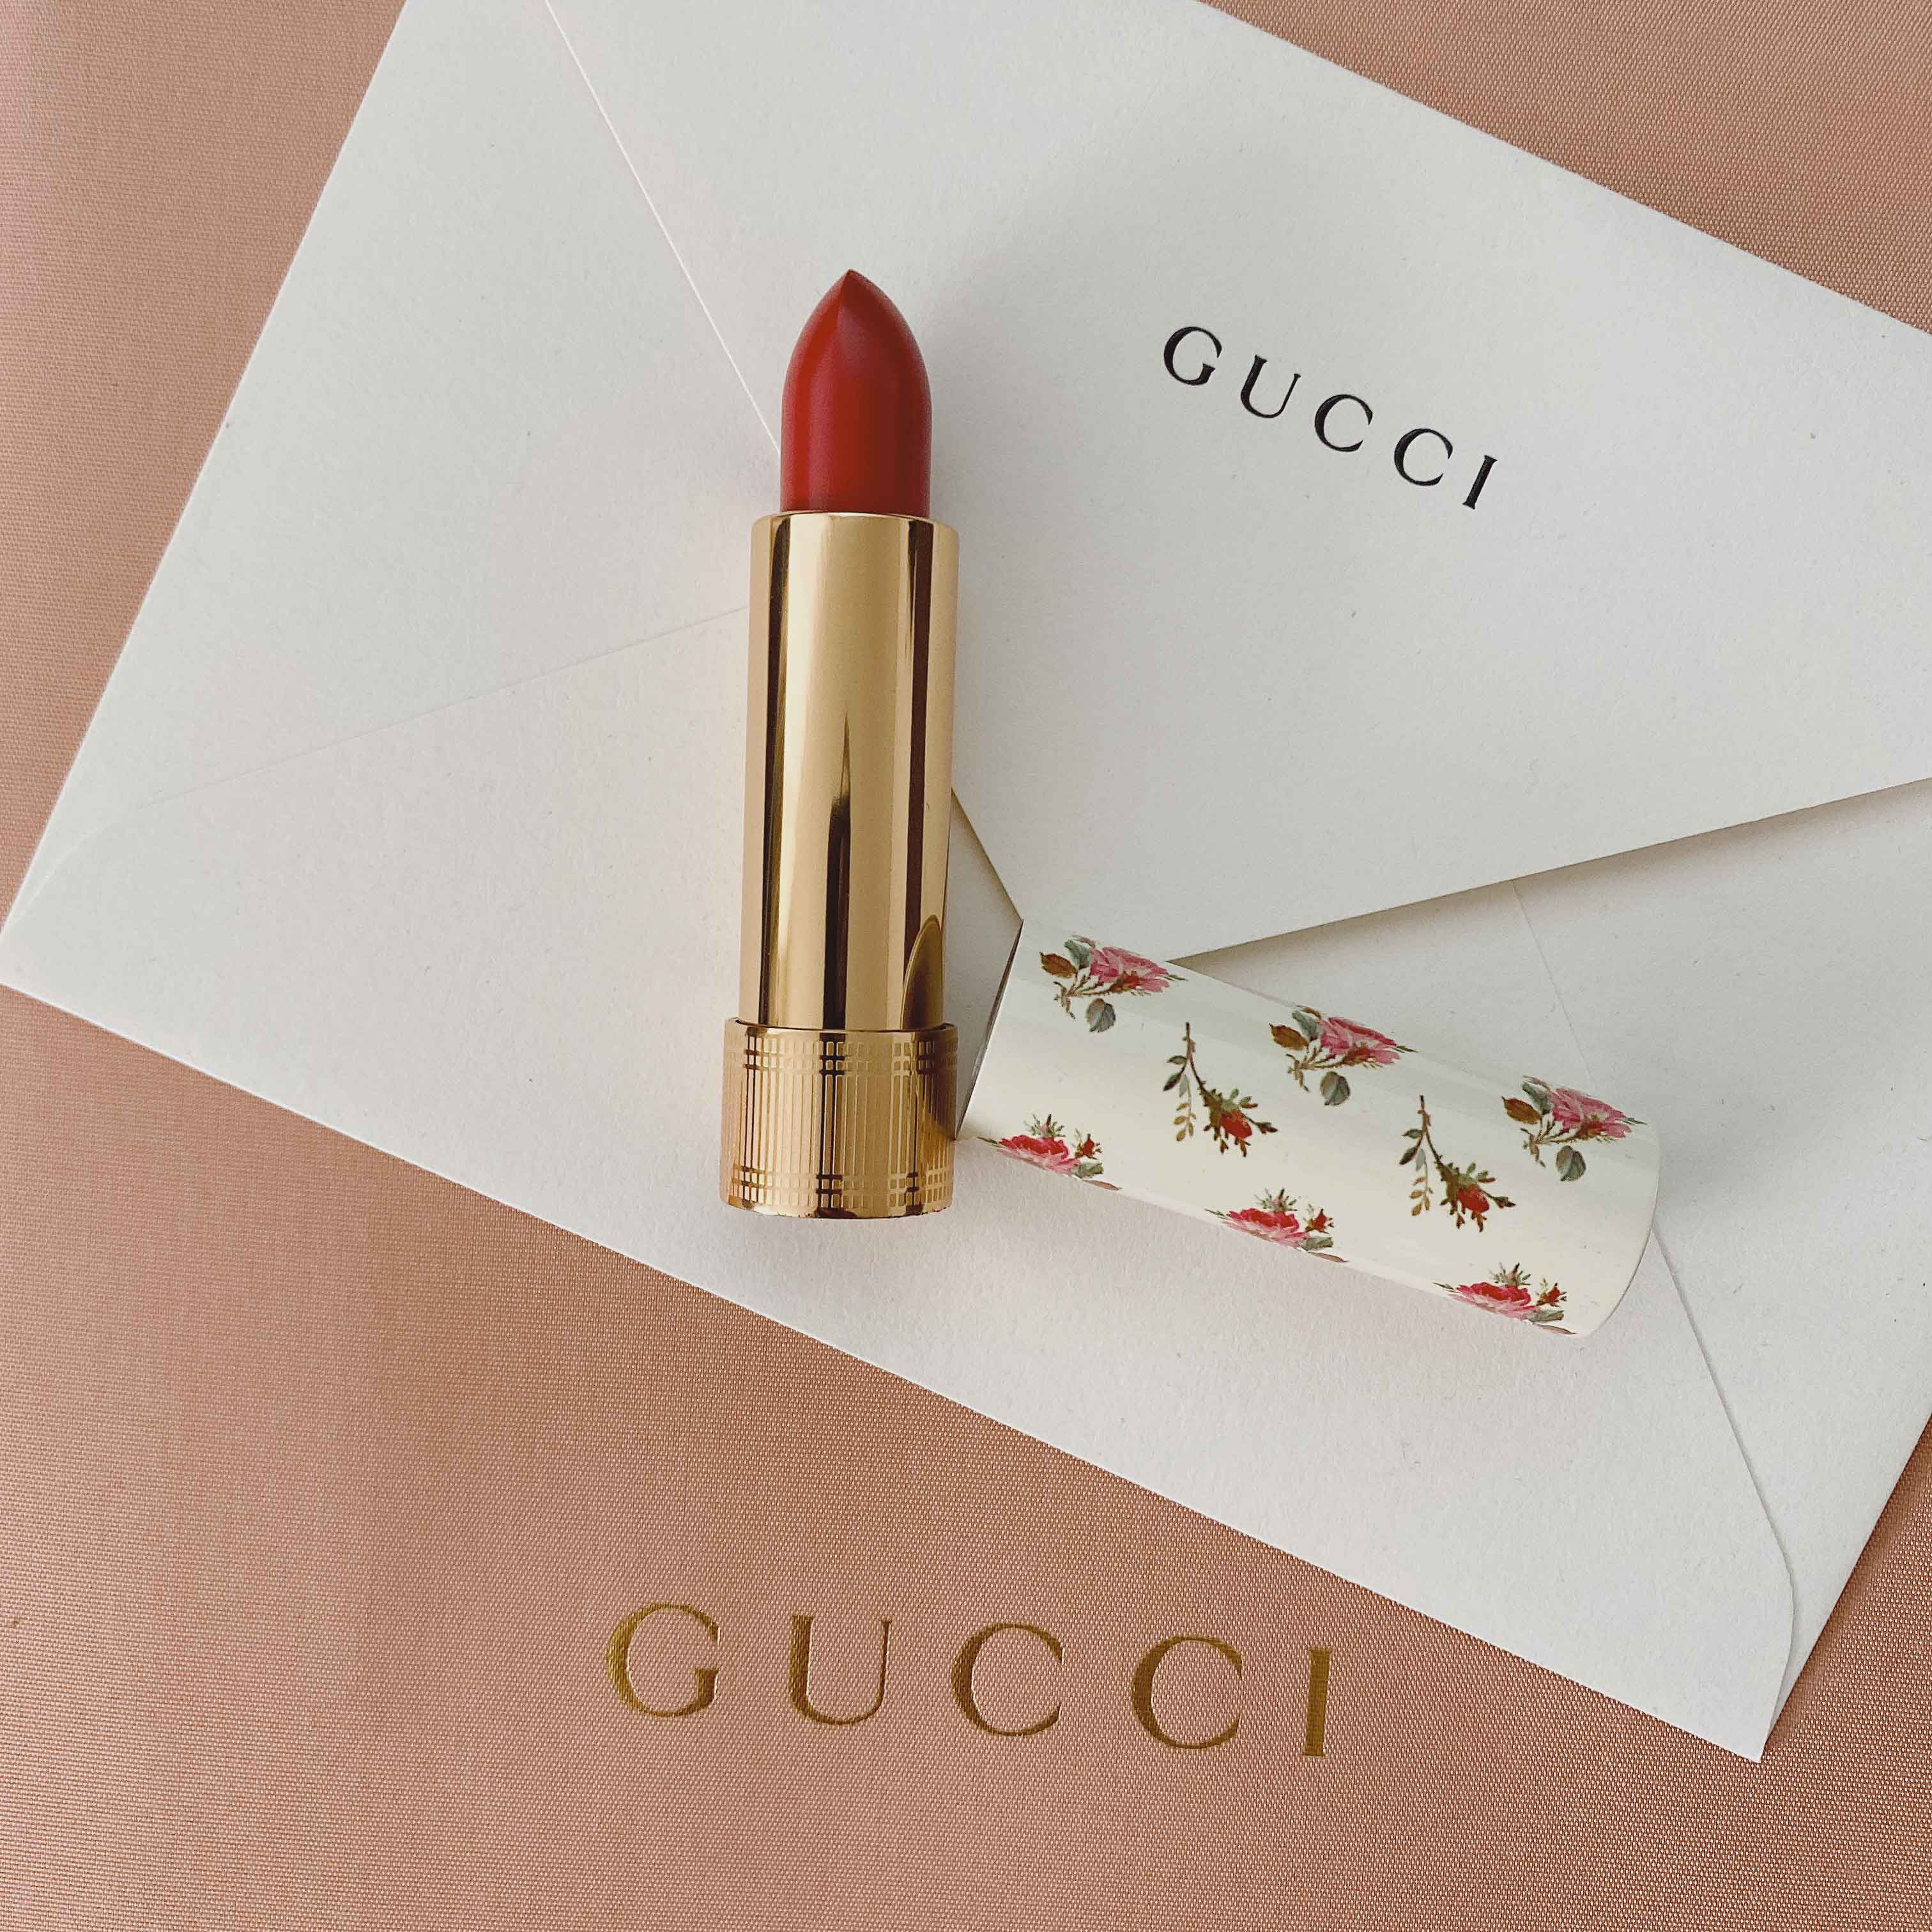 Valentine's day gift guide for women 2020 – Affordable luxury gift ideas - Gucci lipstick